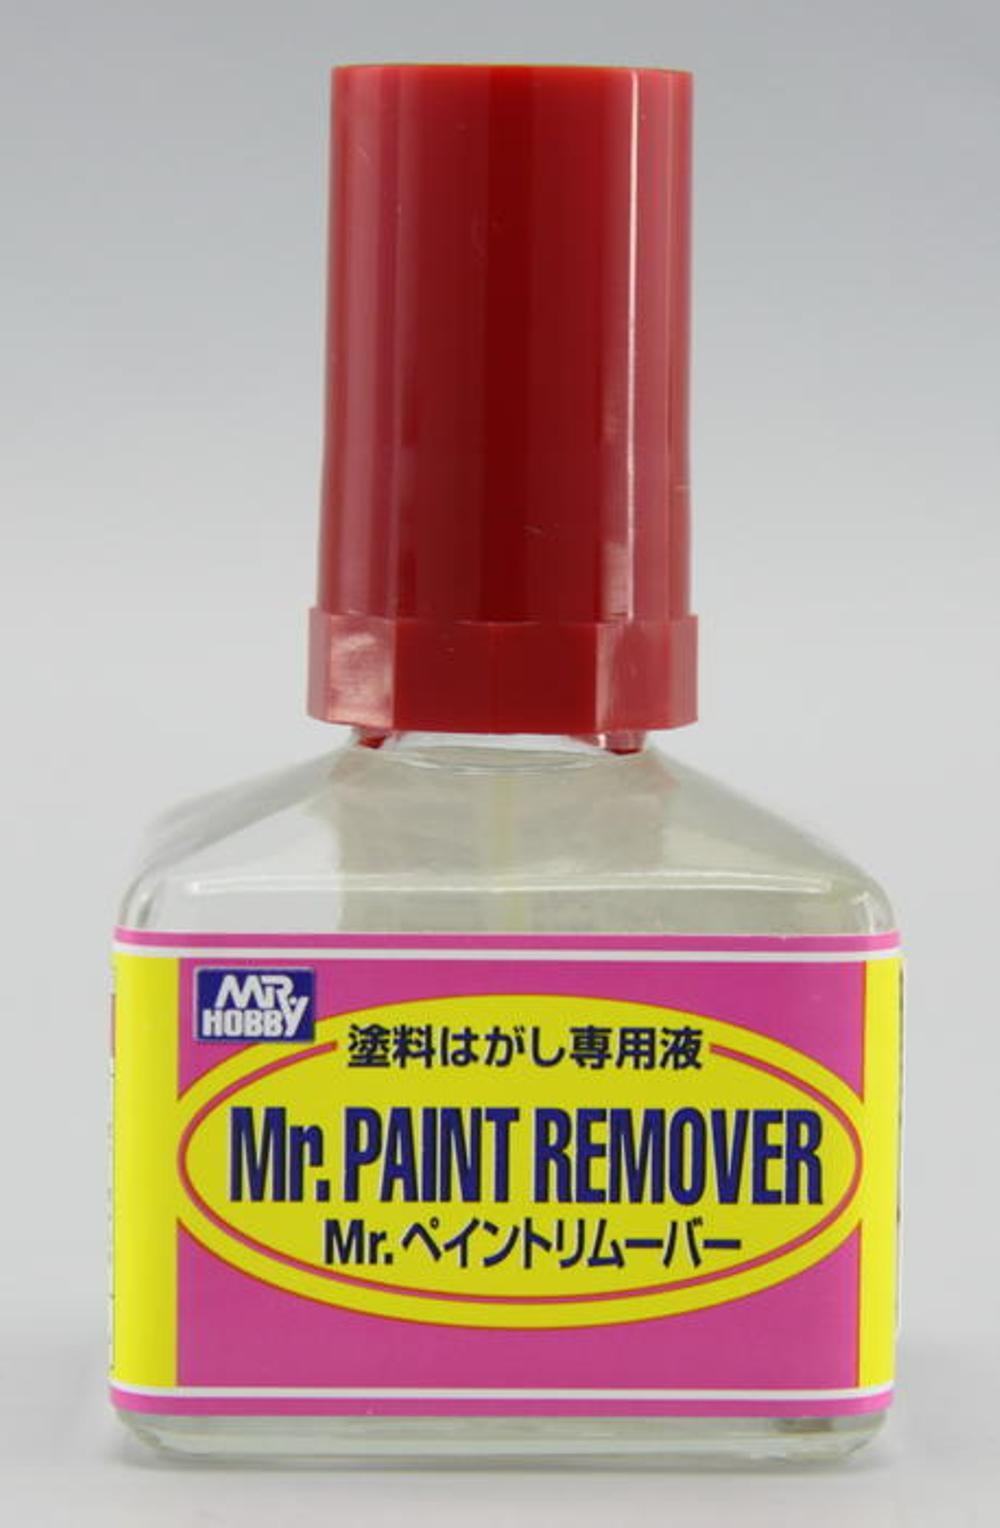 Mr_Paint_Remover___Cat_Gundam_Model_Kit_Paint.jpg